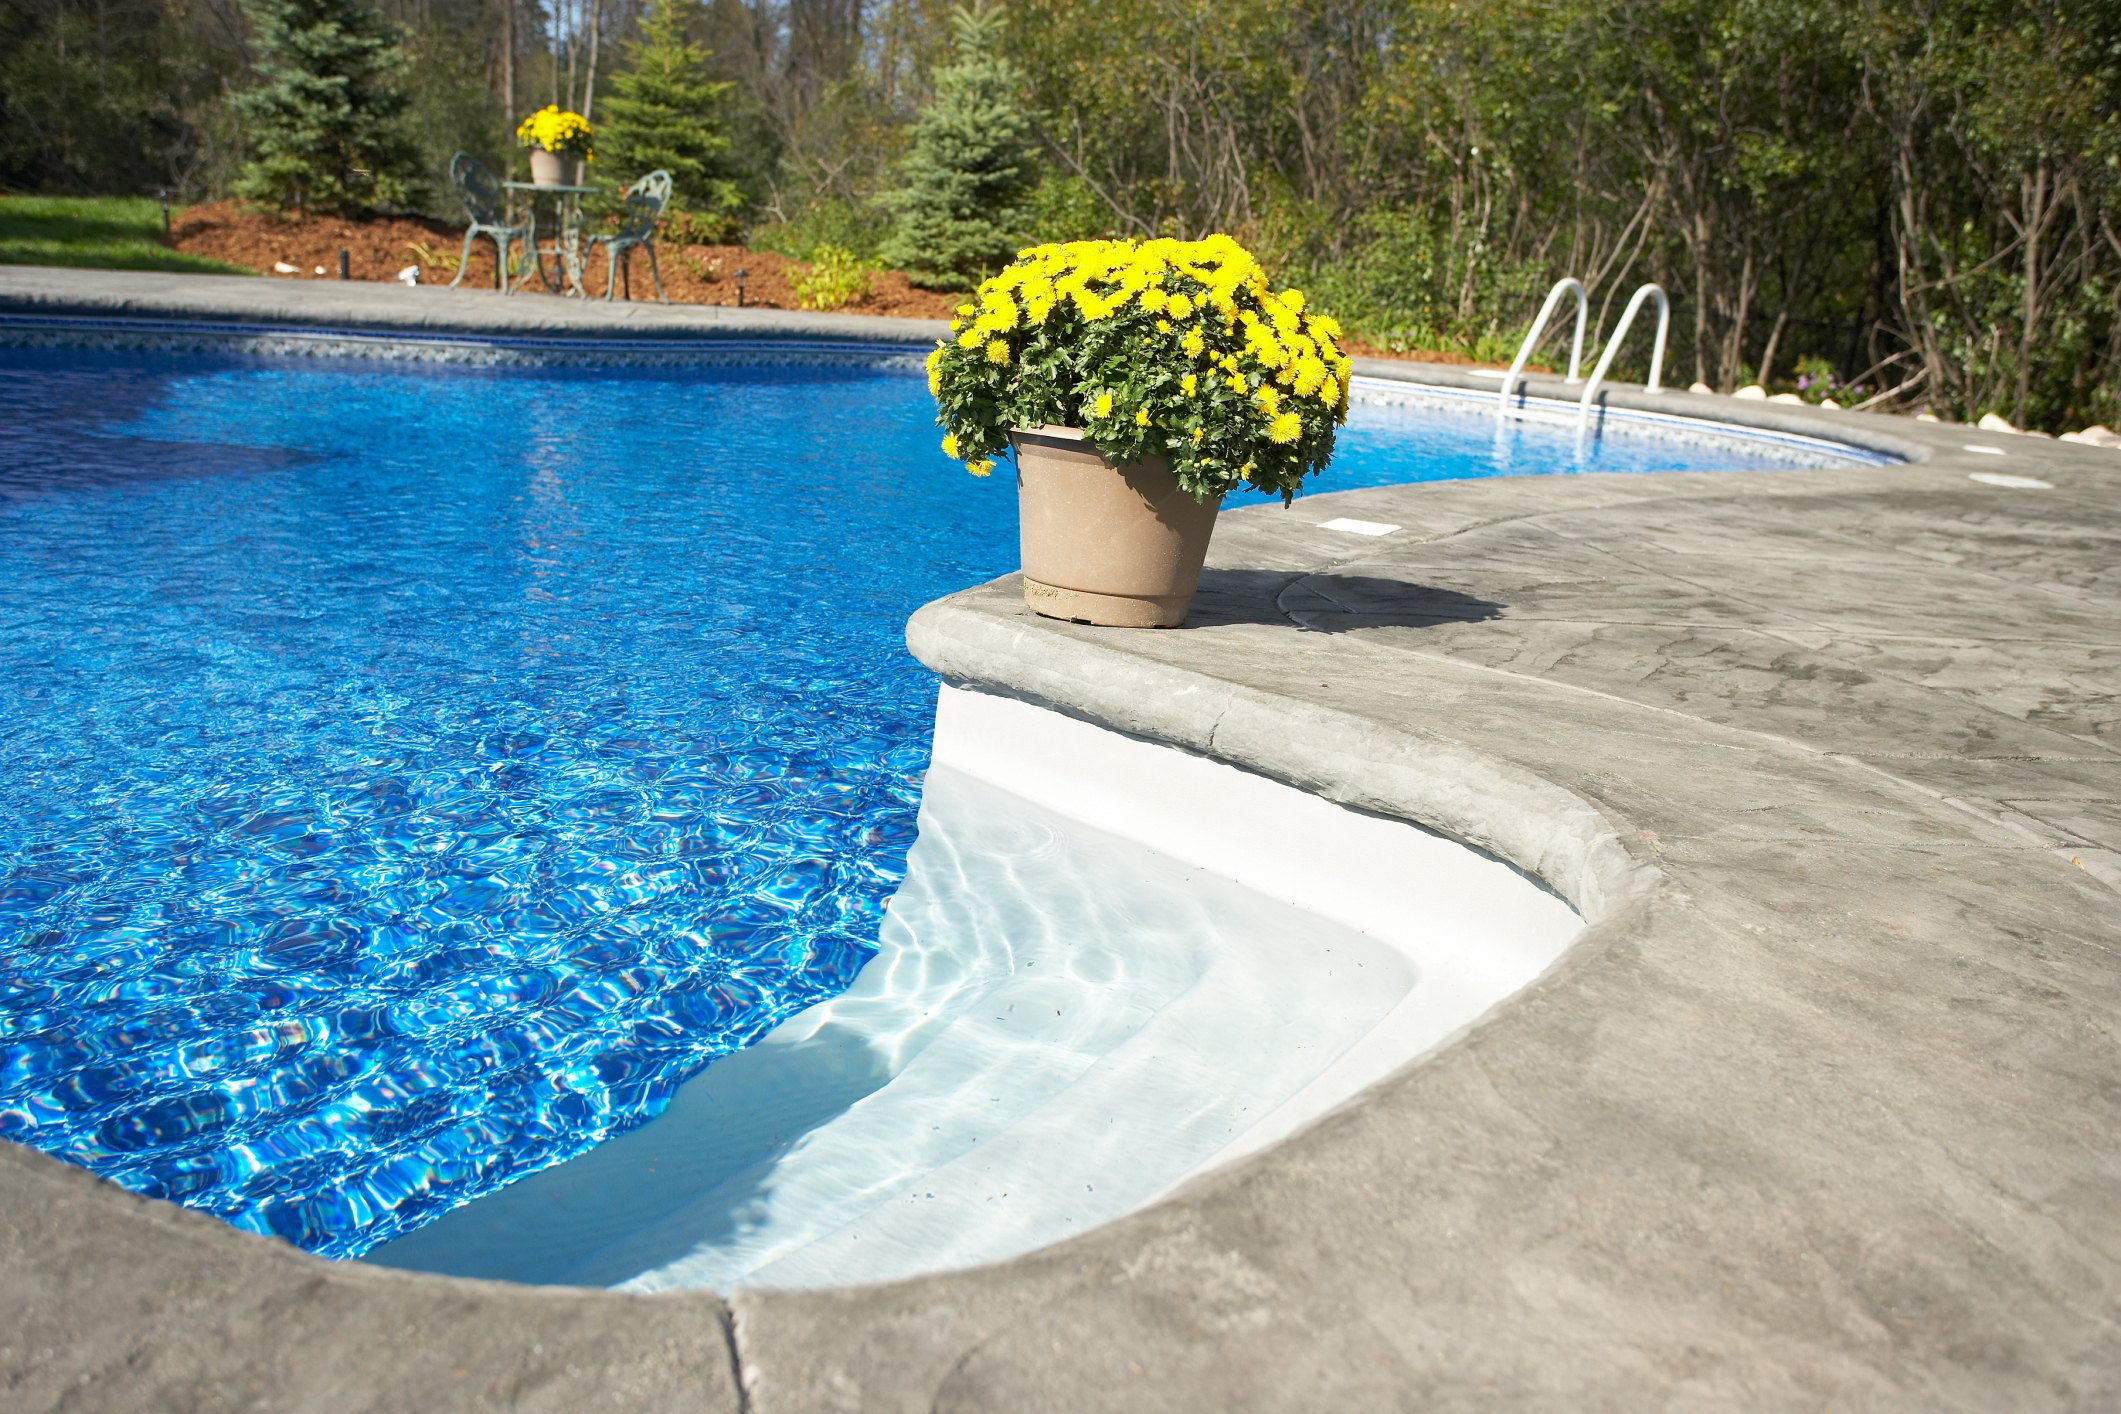 Traction Material For Pool Steps Dock Ehow